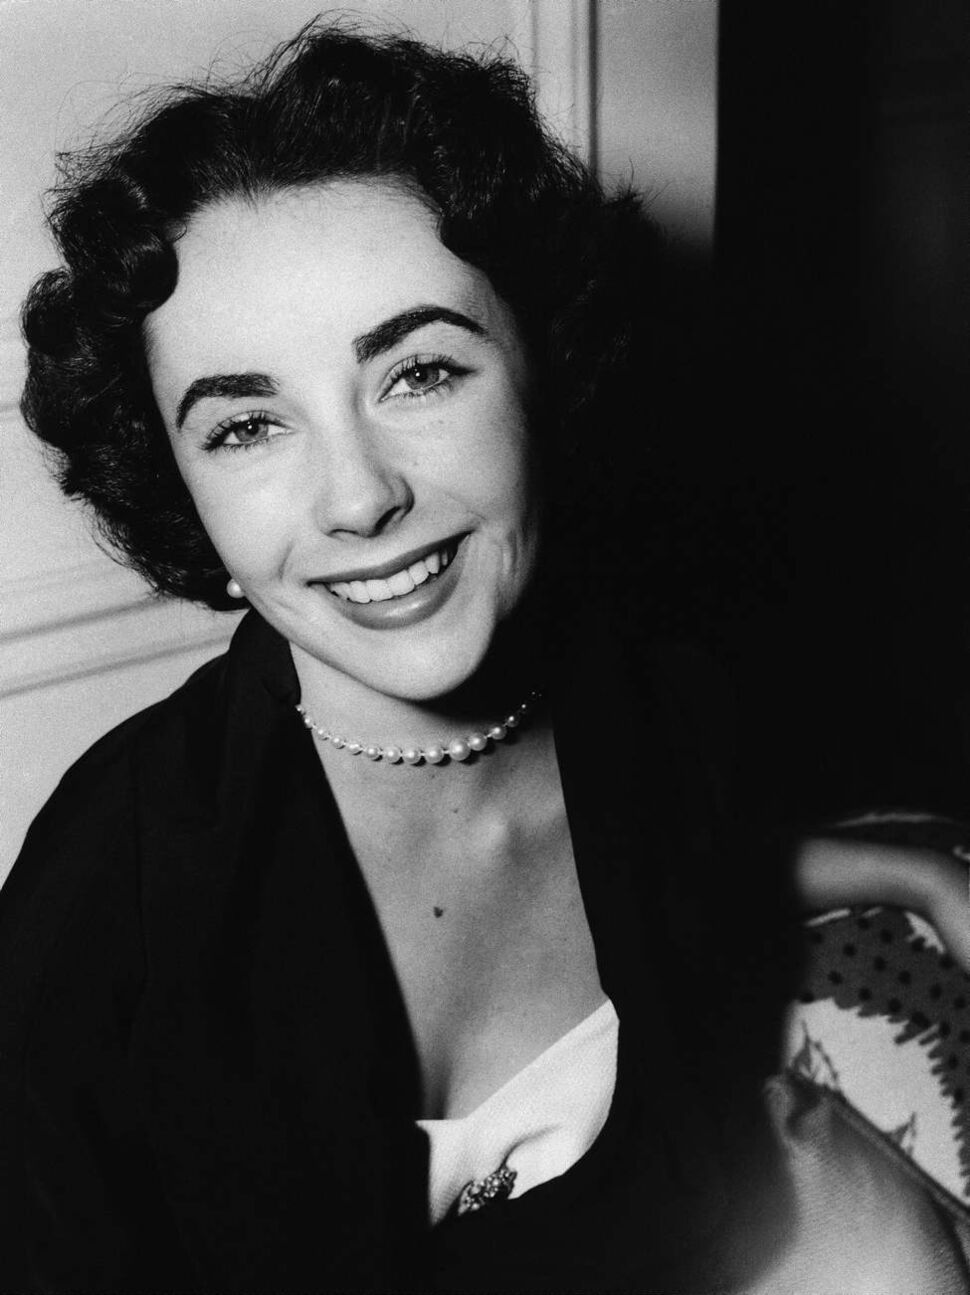 In a June 10, 1950 file photo, actress Elizabeth Taylor is shown on her arrival from Paris to London, at the Savoy Hotel. (AP Photo/File)